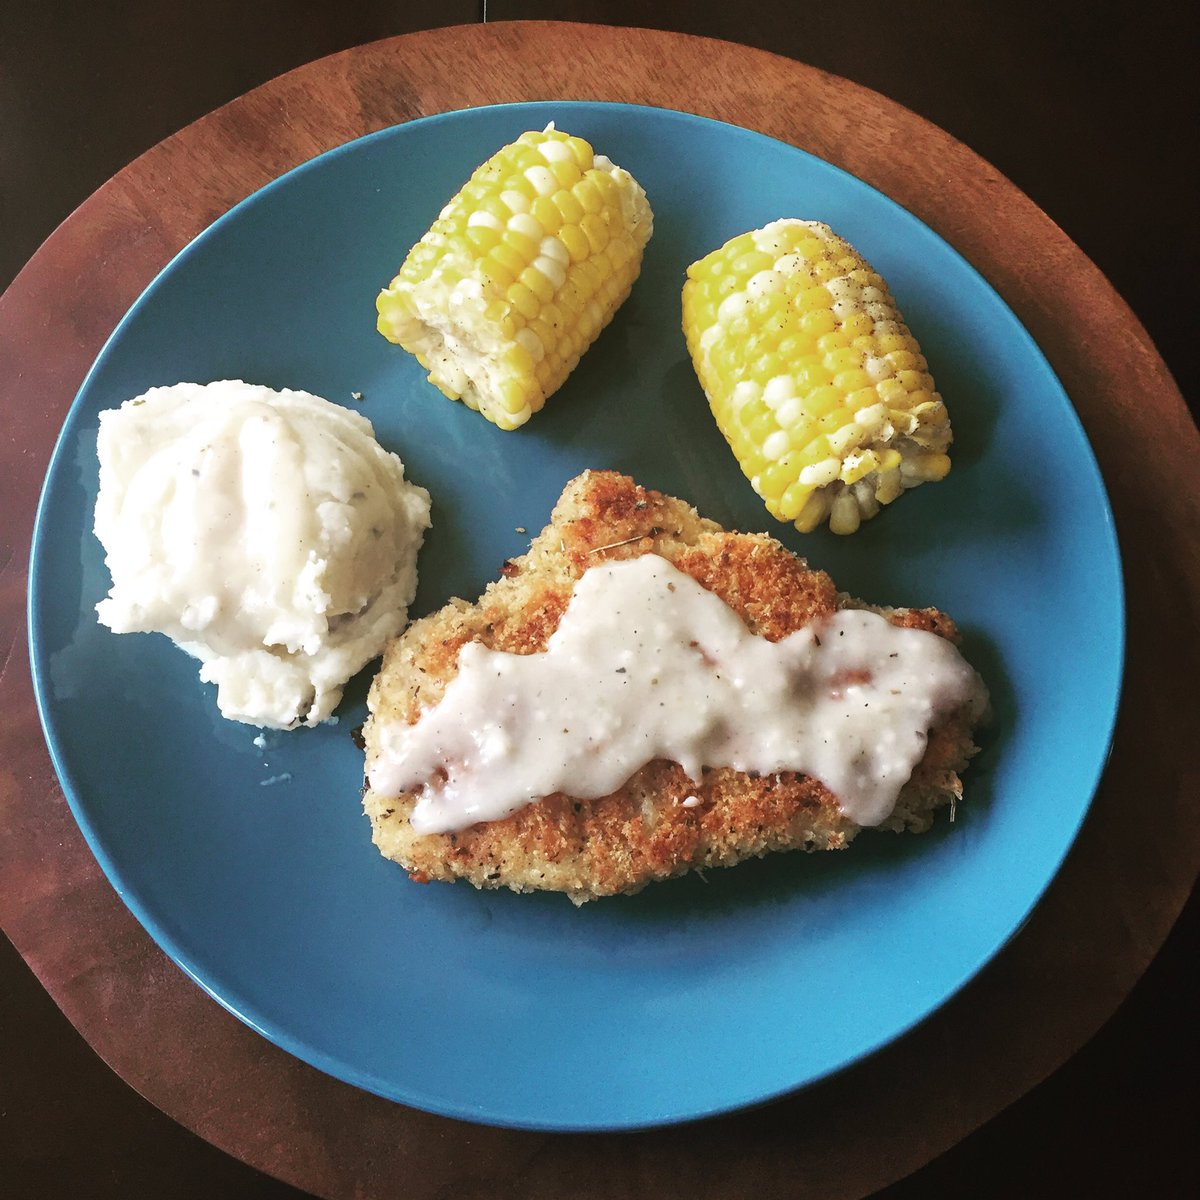 #southerncooking #sunday! chicken #friedchicken w/country gravy, mashed potatoes &amp; corn boiled in milk &amp;butter. @Foodiechats @FoodyTV<br>http://pic.twitter.com/WJFTqhZqsm